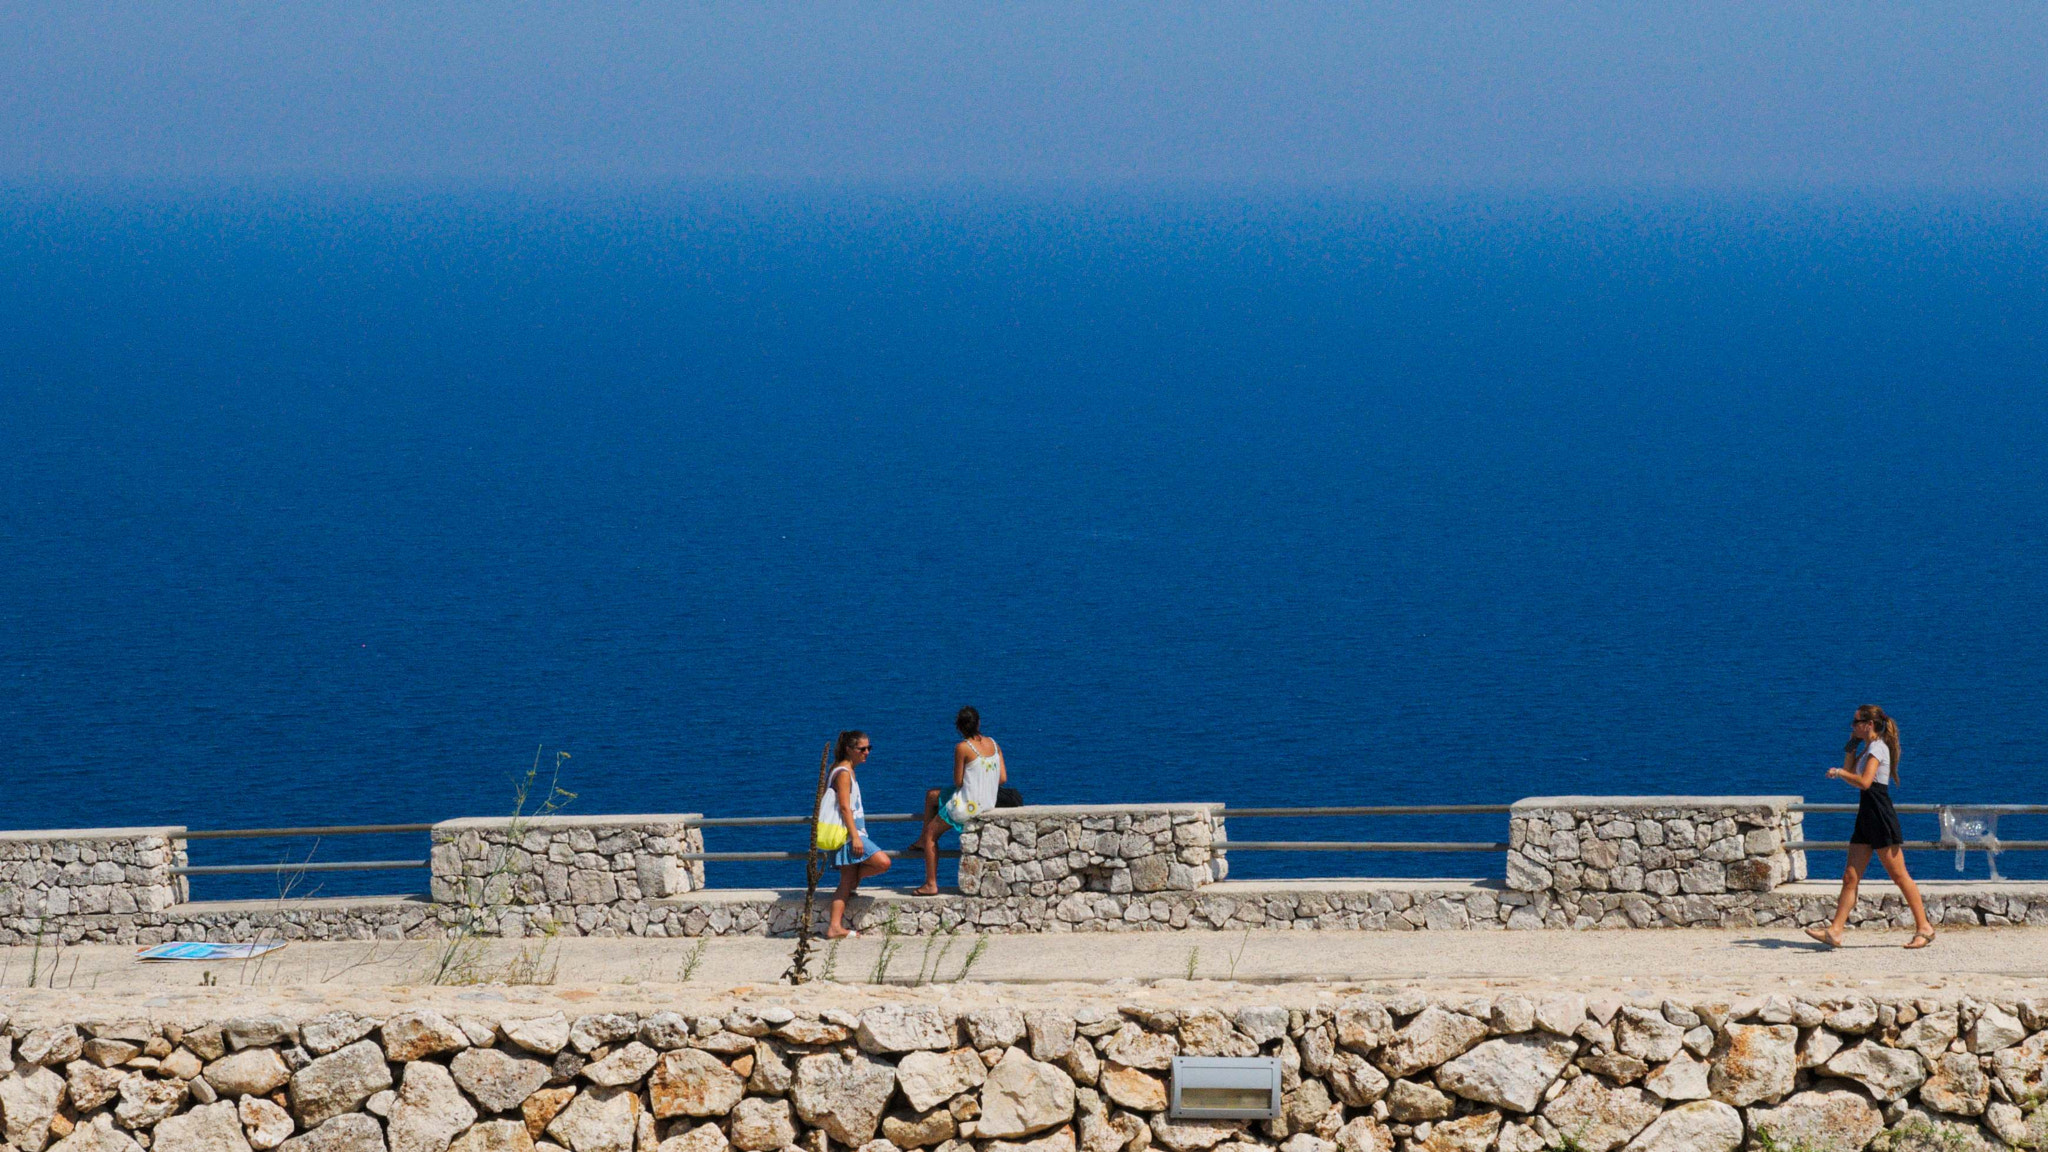 Photograph Traveling in Salento by Marco Milani on 500px